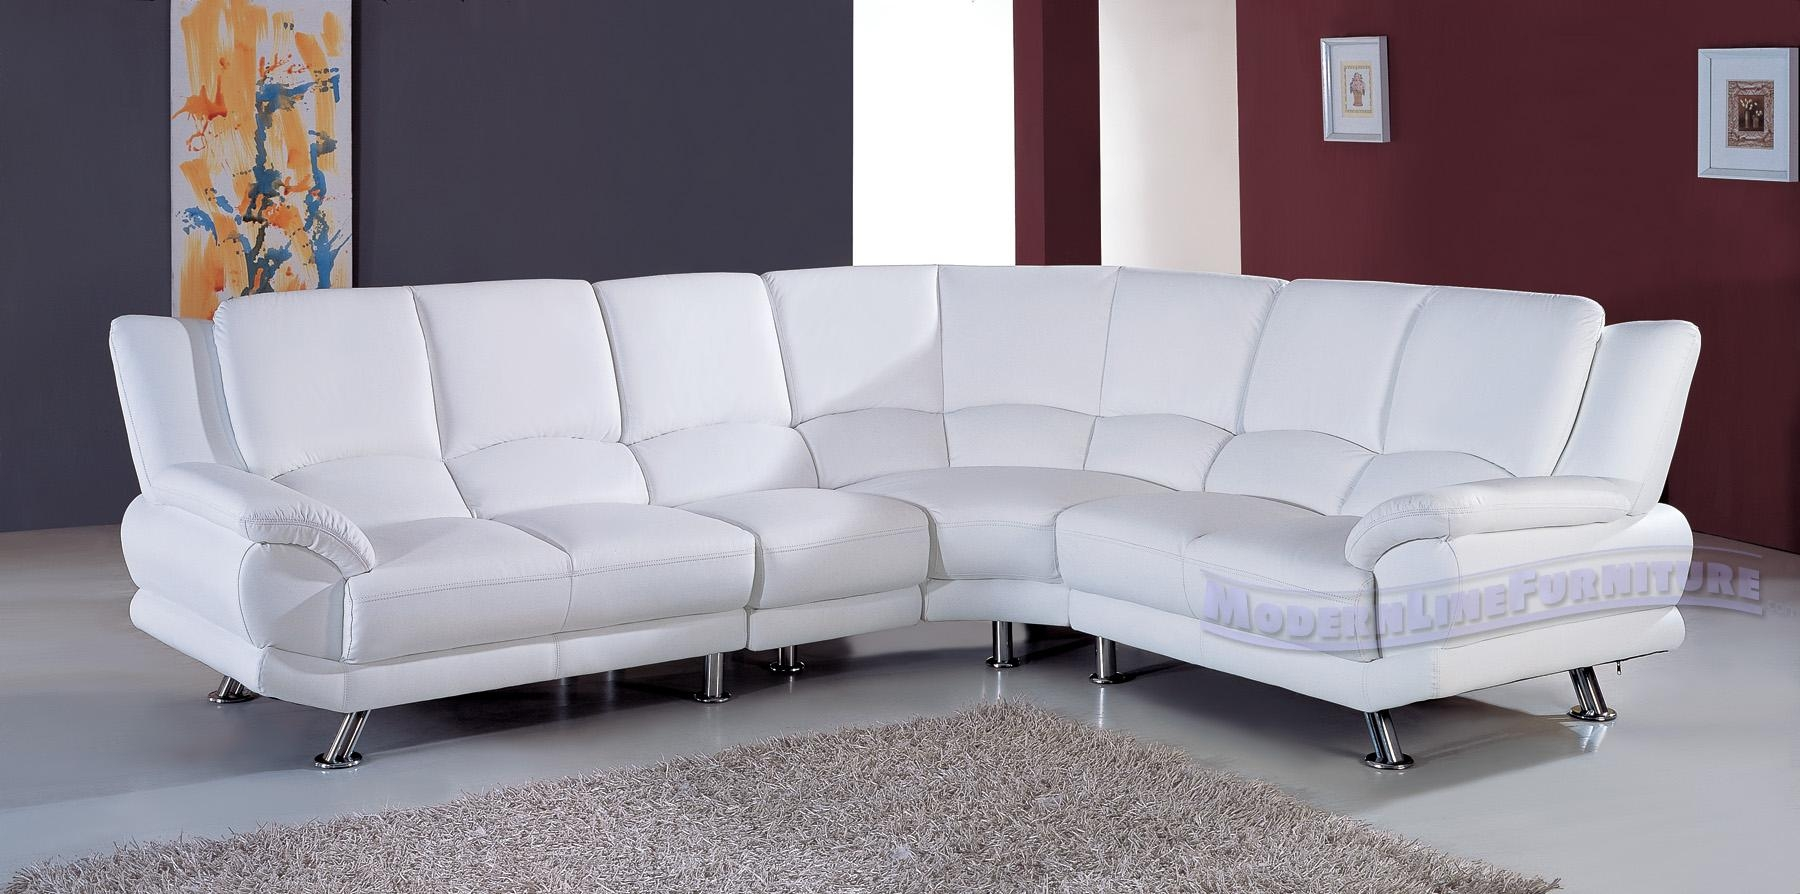 White Leather Sofas In White Leather Sofas (Image 20 of 20)